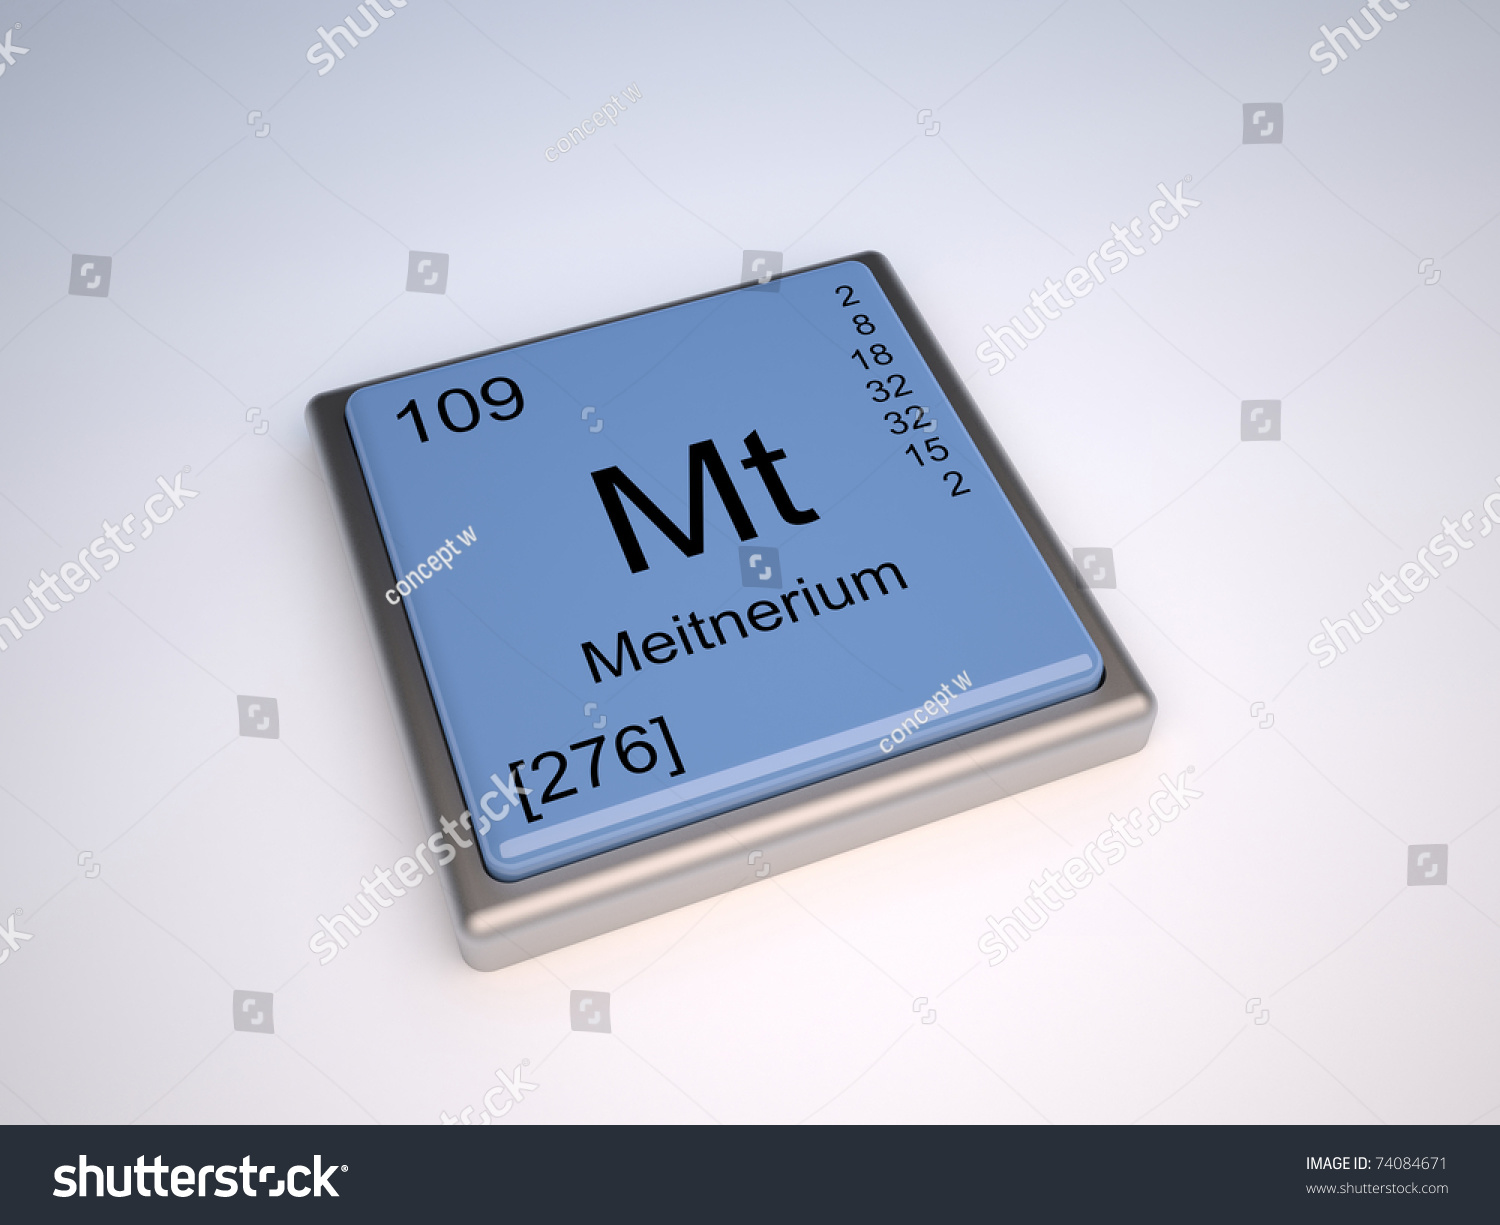 Meitnerium chemical element periodic table symbol stock illustration meitnerium chemical element of the periodic table with symbol mt urtaz Gallery